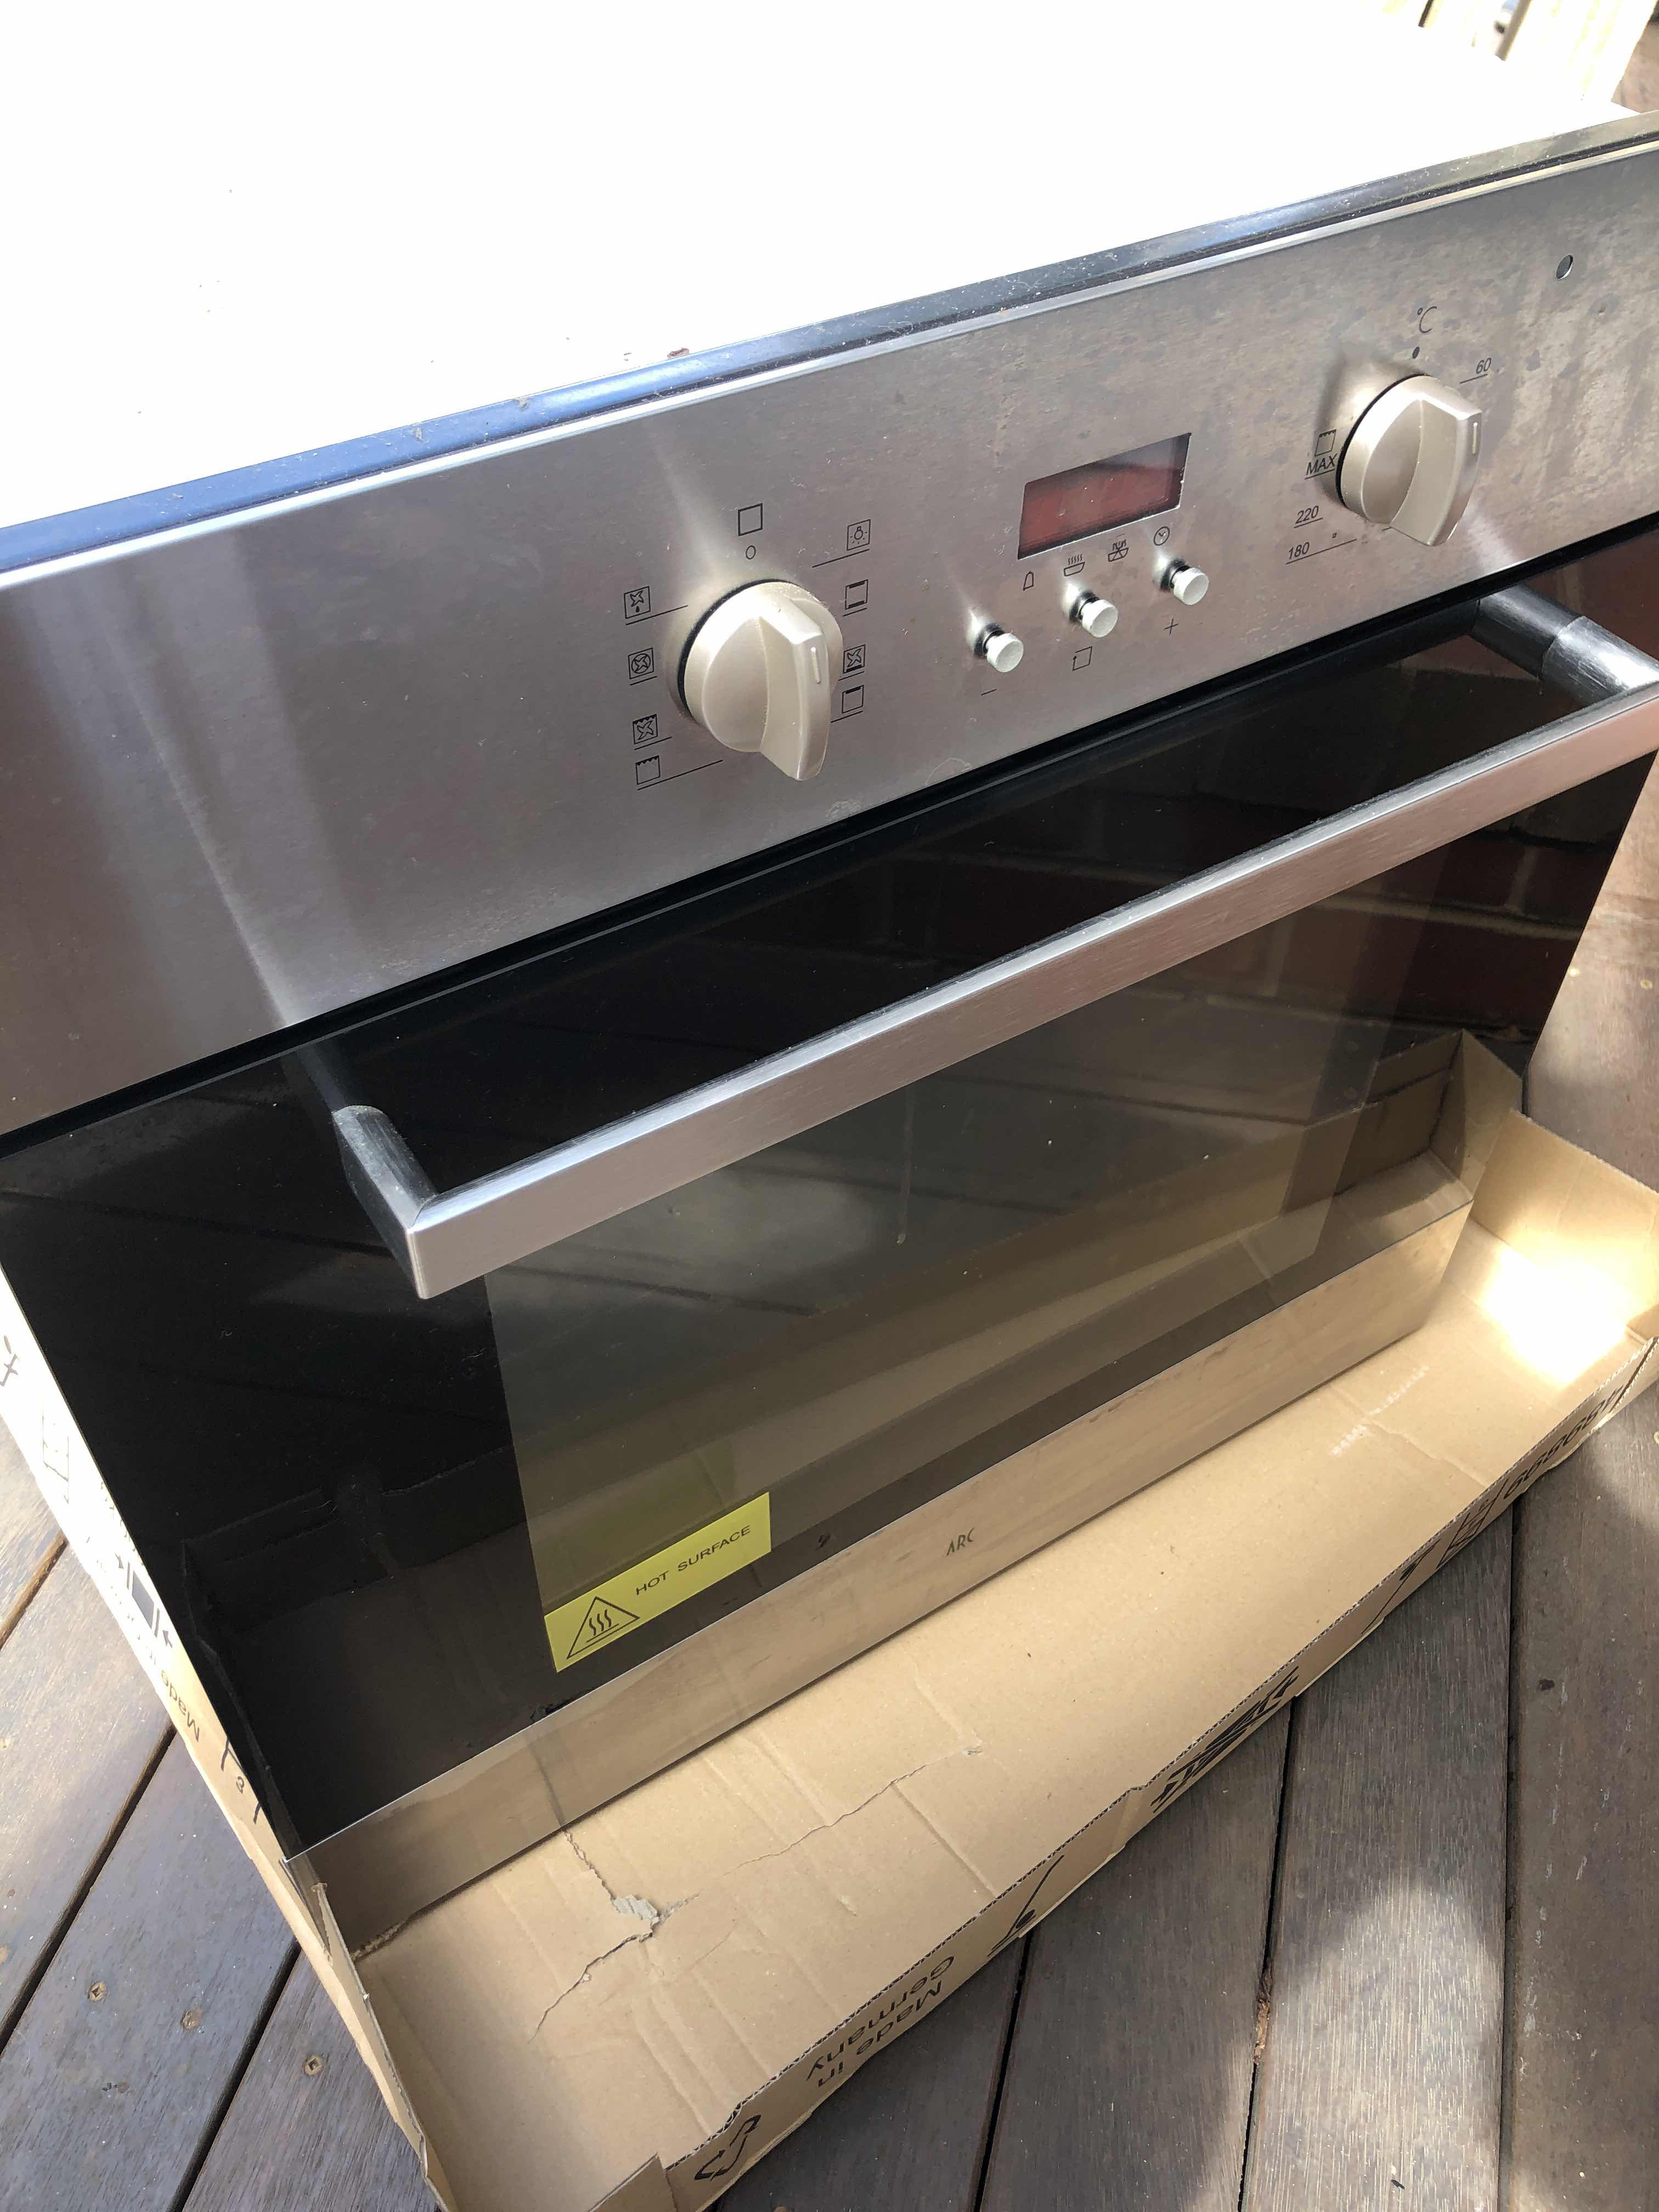 Oven repairs at Pascoe Vale South By Electrical Services Melbourne Pty Ltd via i4Tradies